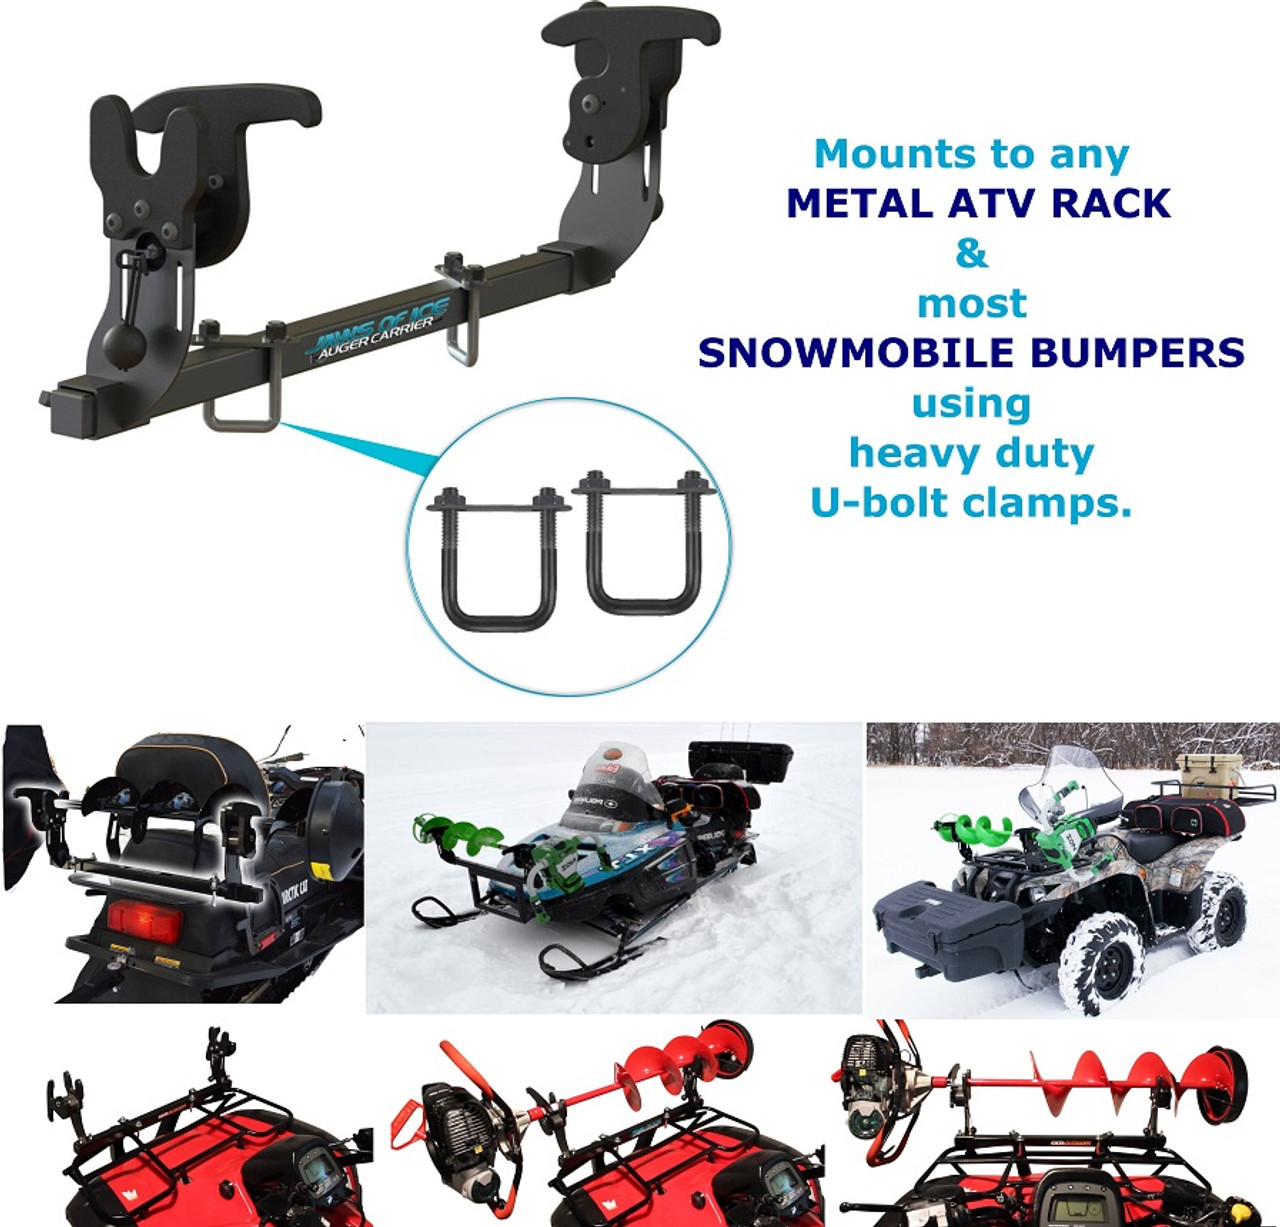 Mount for ice auger that works with metal atv rack